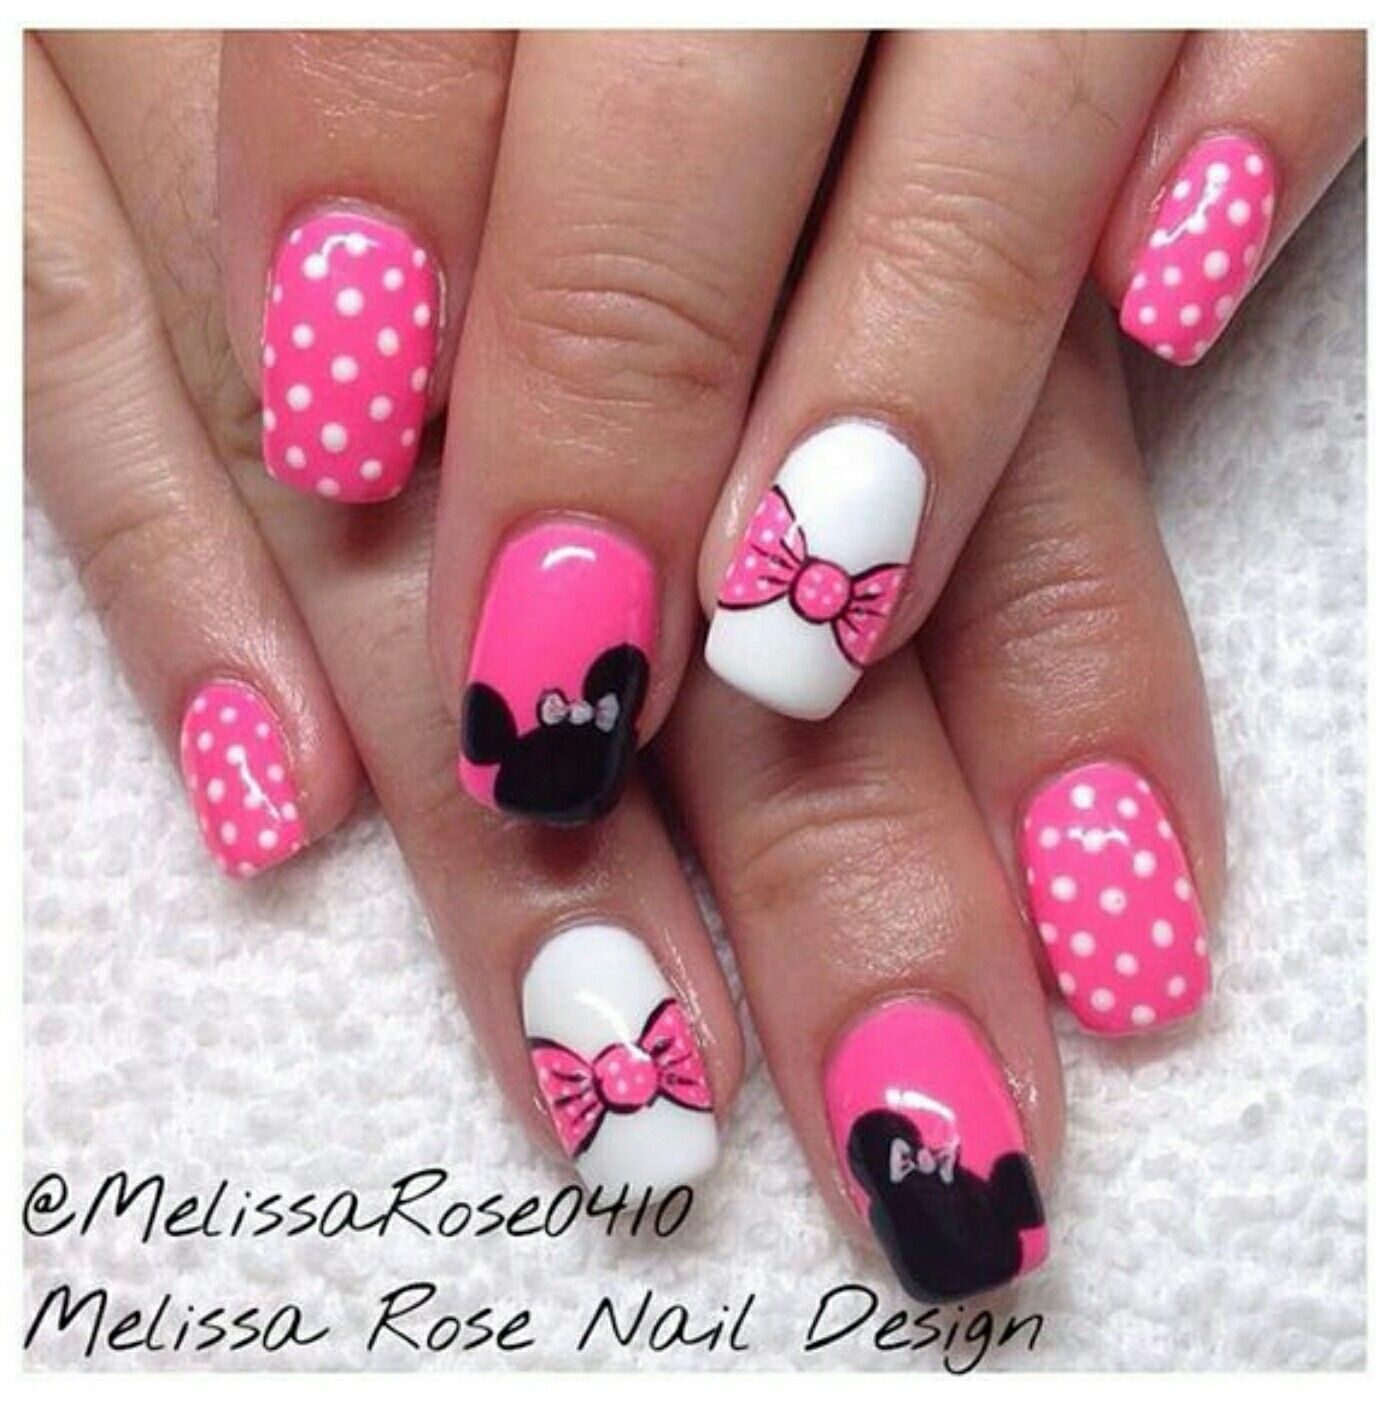 Pin de Kevinly Sillva en unhas | Pinterest | Decoración de uñas ...